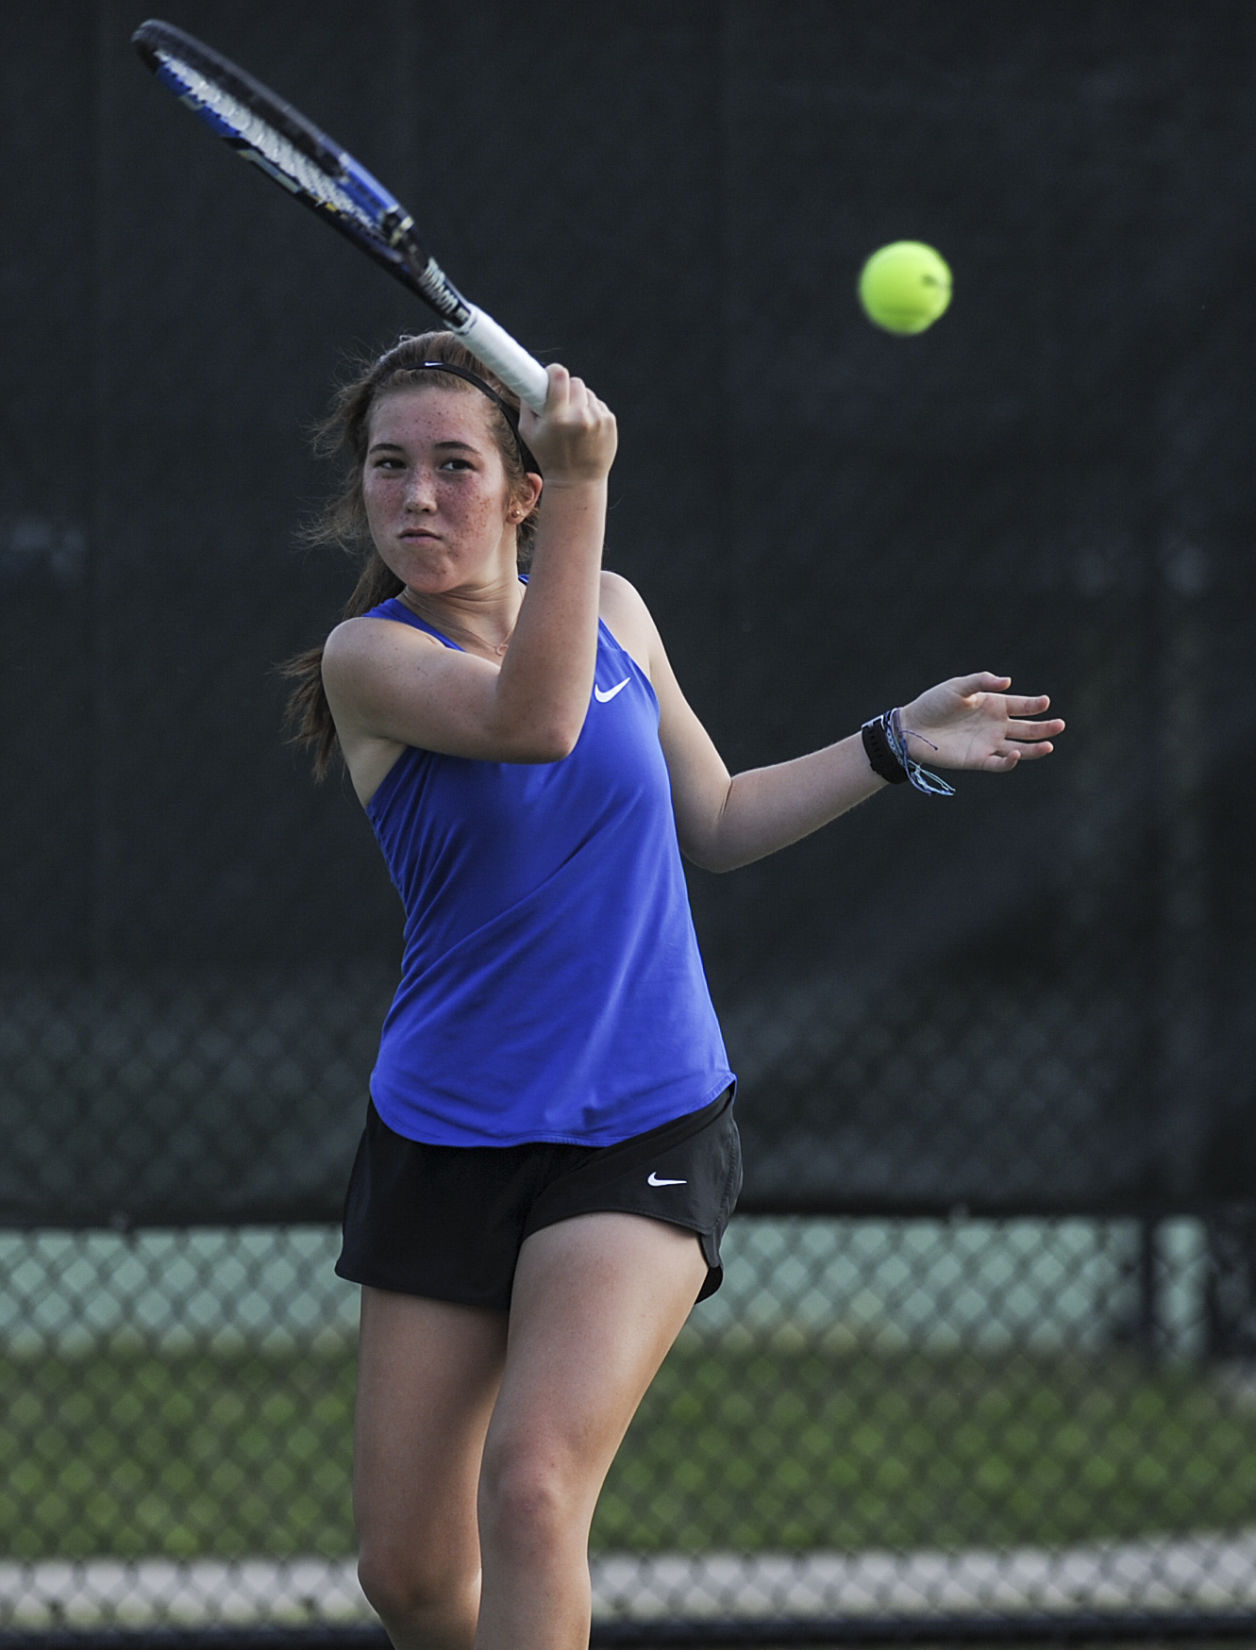 sofa sport tennis pottery barn sleeper florence girls second at sectional sports